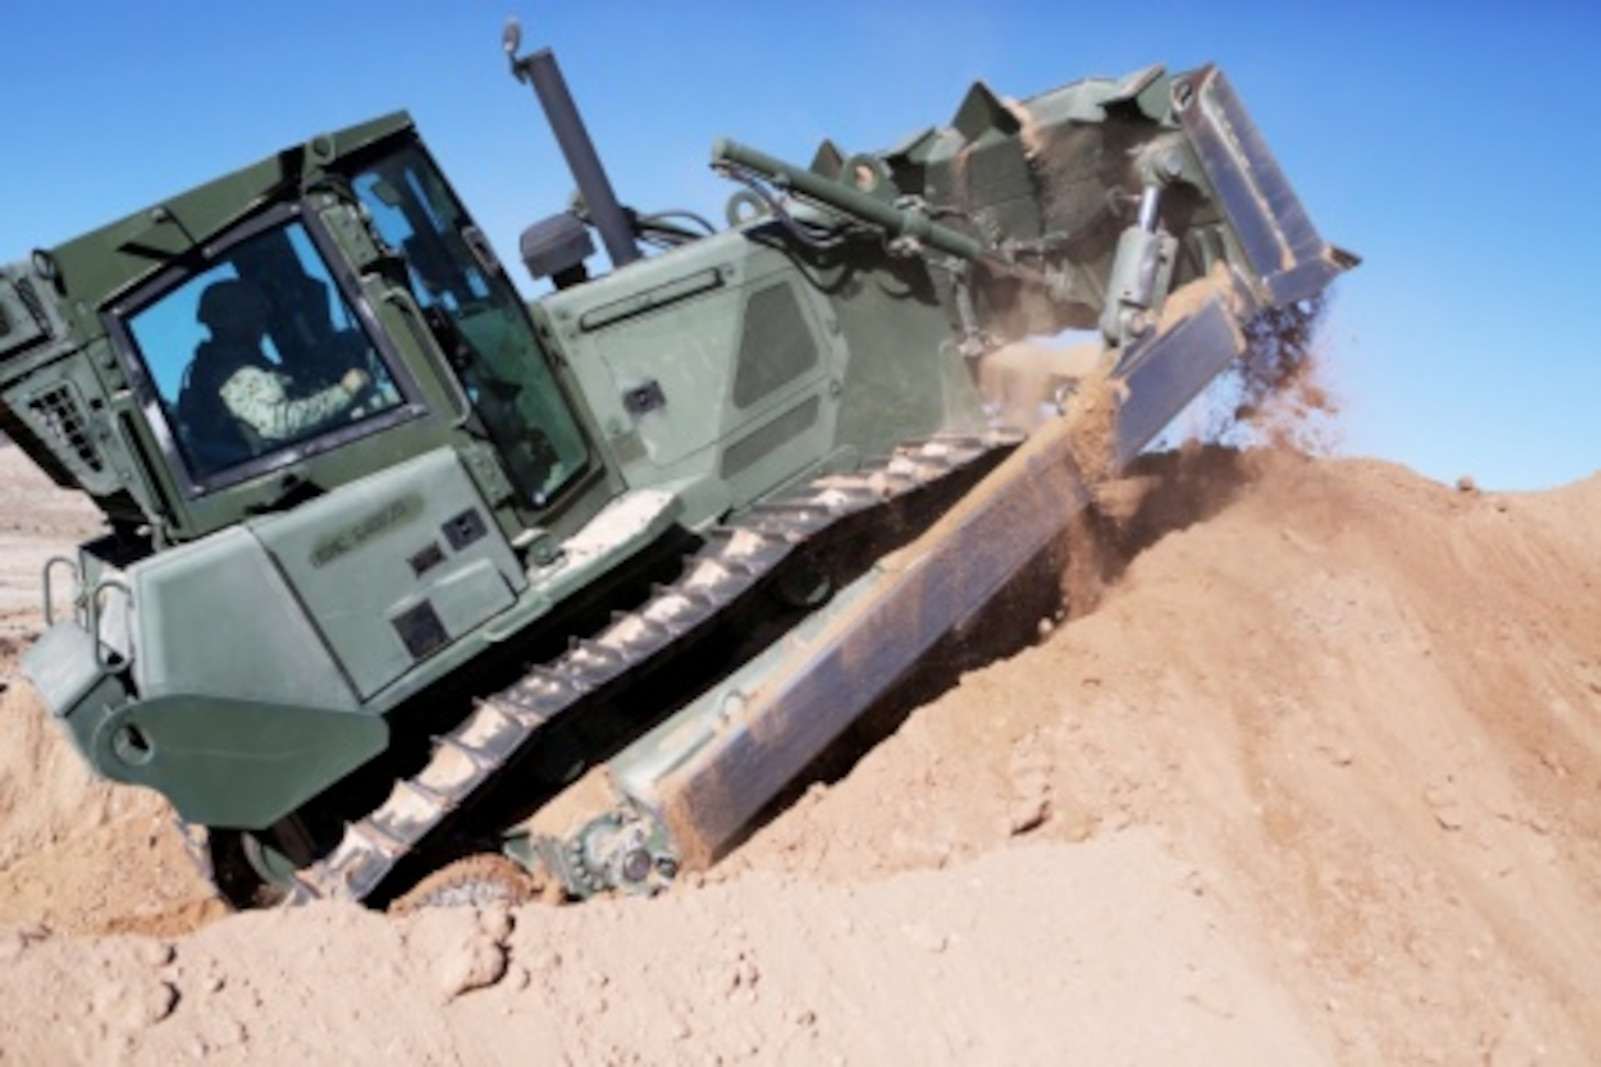 Lance Cpl. Aaron Copley, a heavy equipment operator with Headquarters and Support Company, Combat Logistics Battalion 5, 1st Marine Logistics Group, uses a 626 KR Tram to build a mechanized vehicle fighting position aboard Marine Corps Air Ground Combat Center Twentynine Palms, Calif., Feb. 8, 2016. Marines and Sailors with CLB-5 are participating in Integrated Training Exercise 2-16 in order to prepare their Marines for an upcoming deployment with Special Purpose Marine Air Ground Task Force – Crisis Response – Central Command, as well as increase the proficiency and capabilities of their unit as a whole.